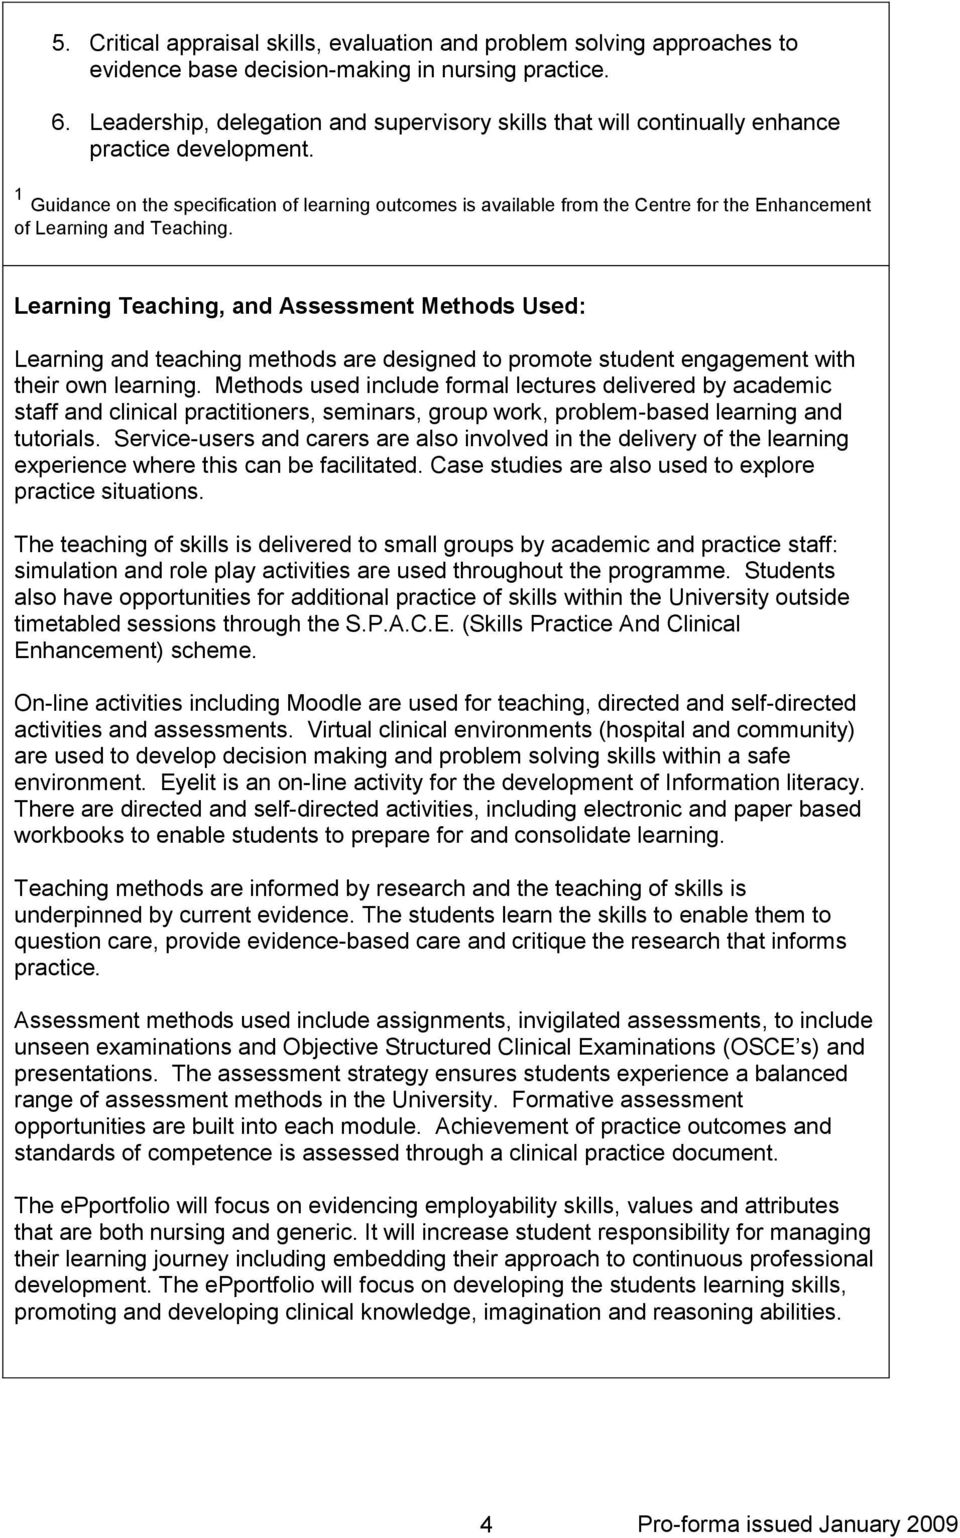 1 Guidance on the specification of learning outcomes is available from the Centre for the Enhancement of Learning and Teaching.